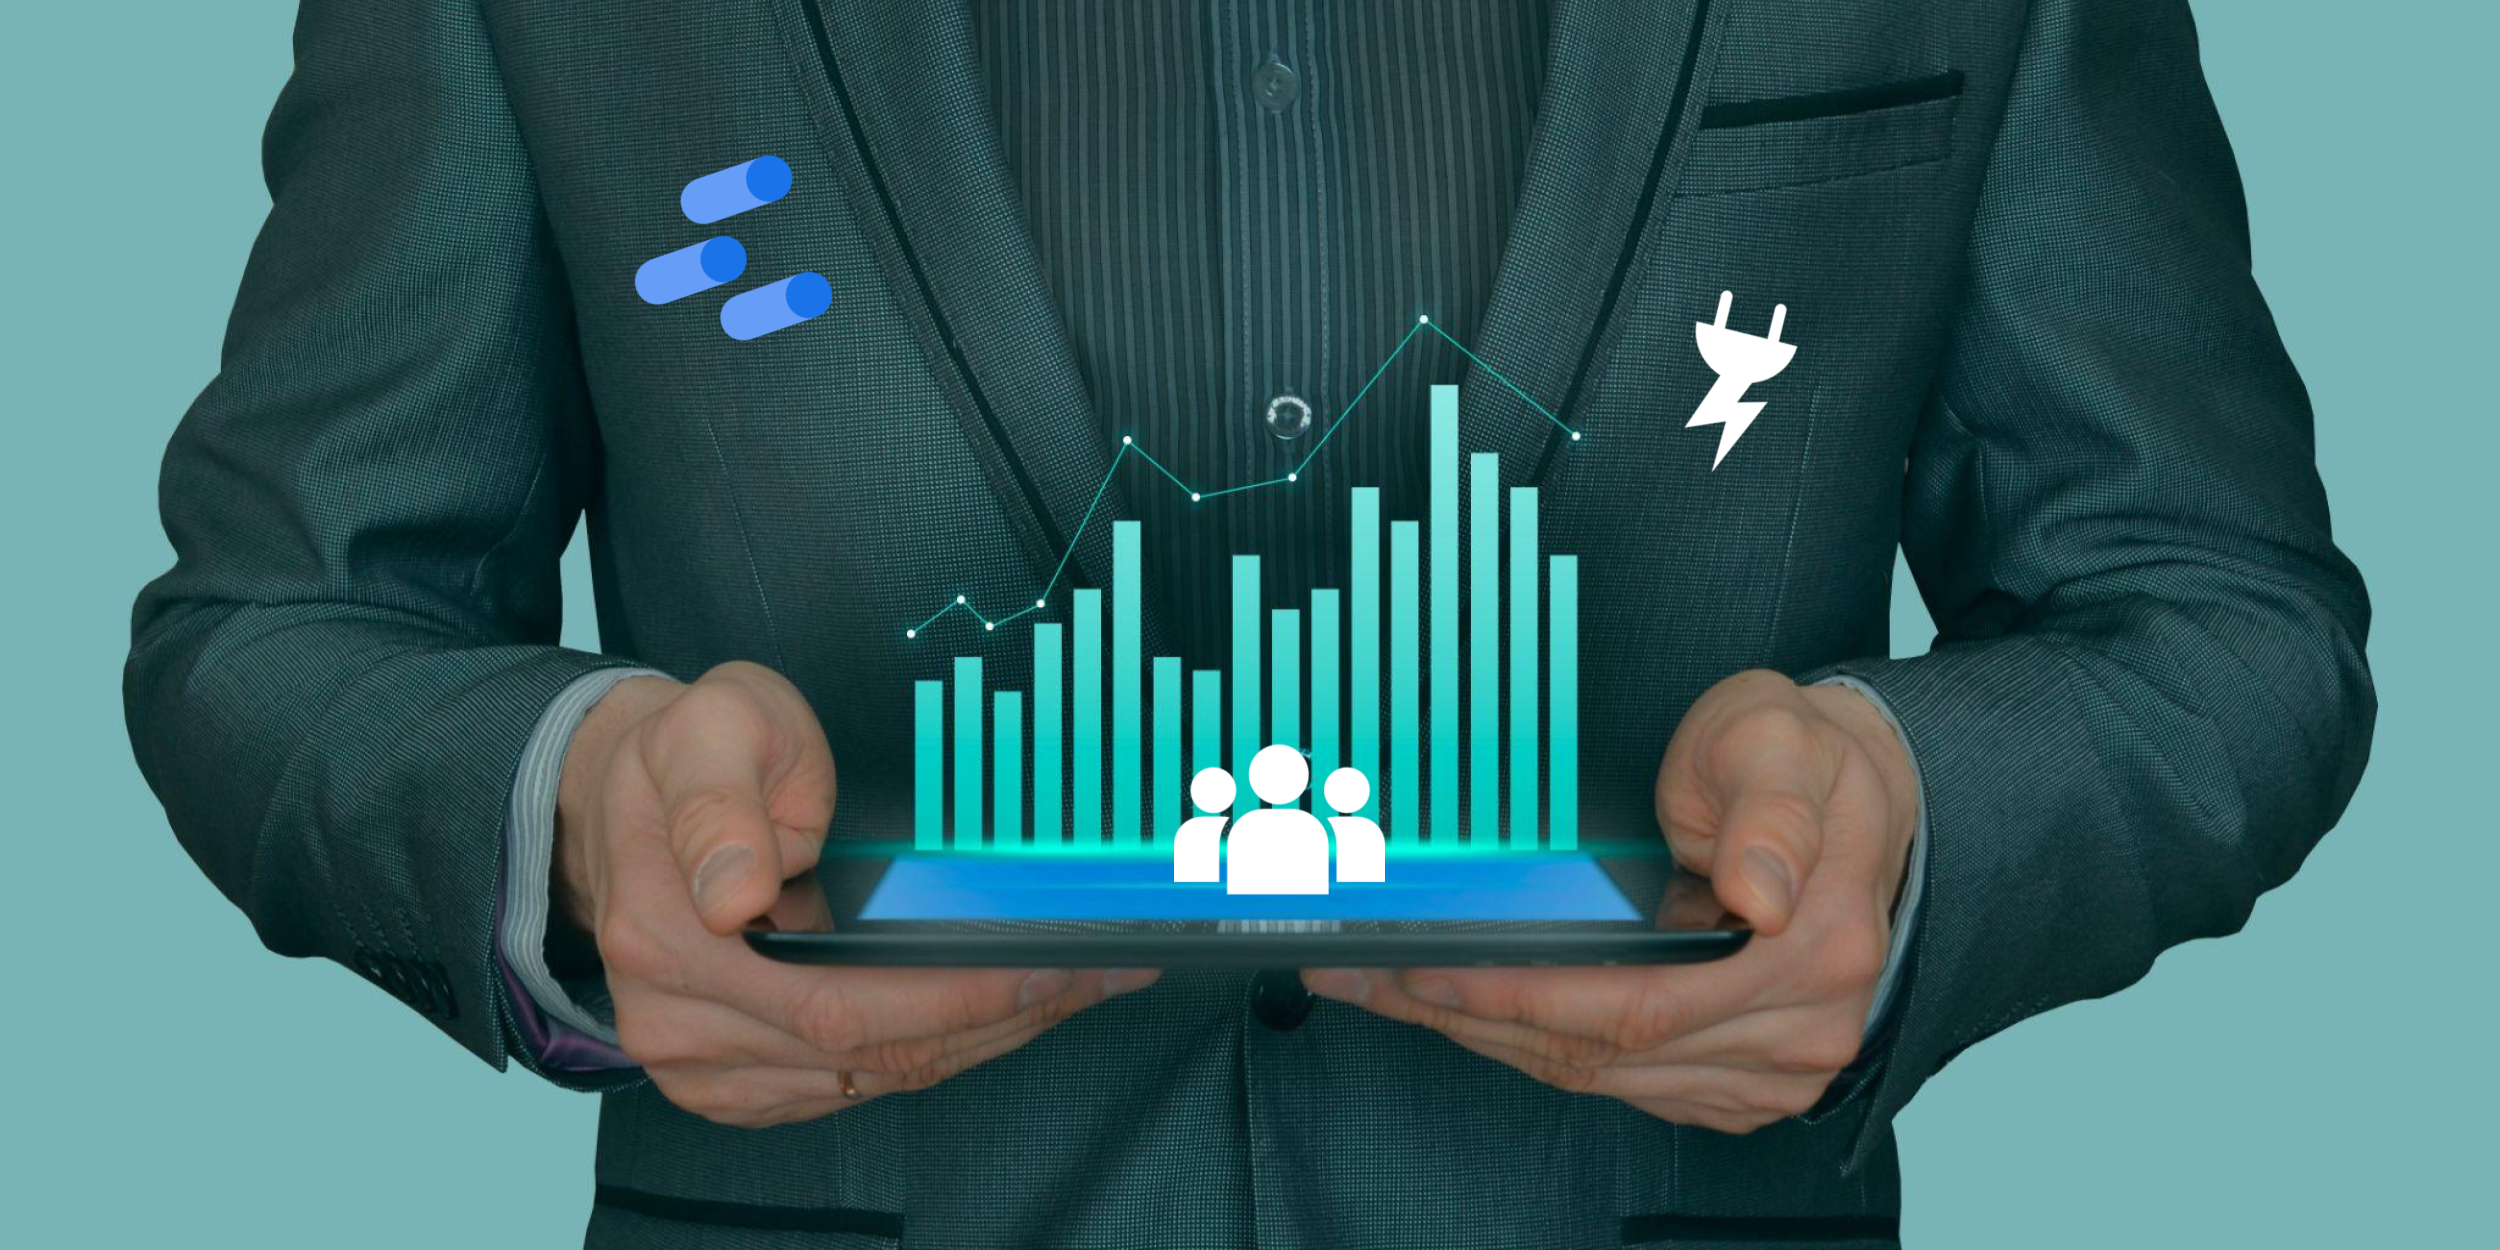 Man with a Data Studio and plug icons on his sleeves holding a tablet with a chart and some human-like silhouettes.